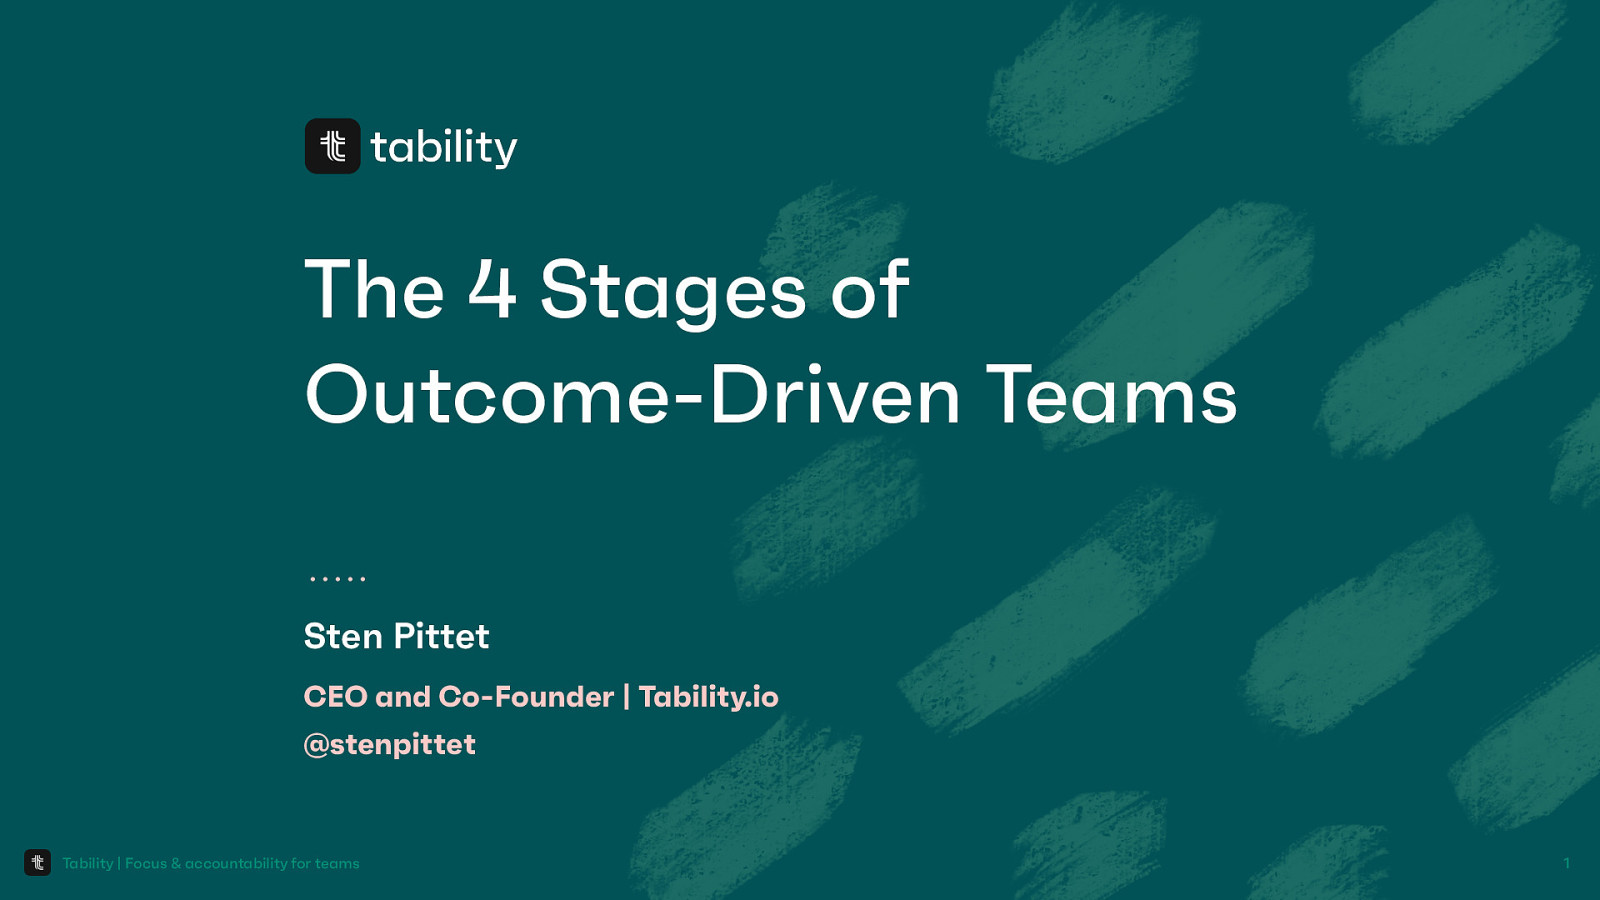 The 4 stages of outcome-driven teams